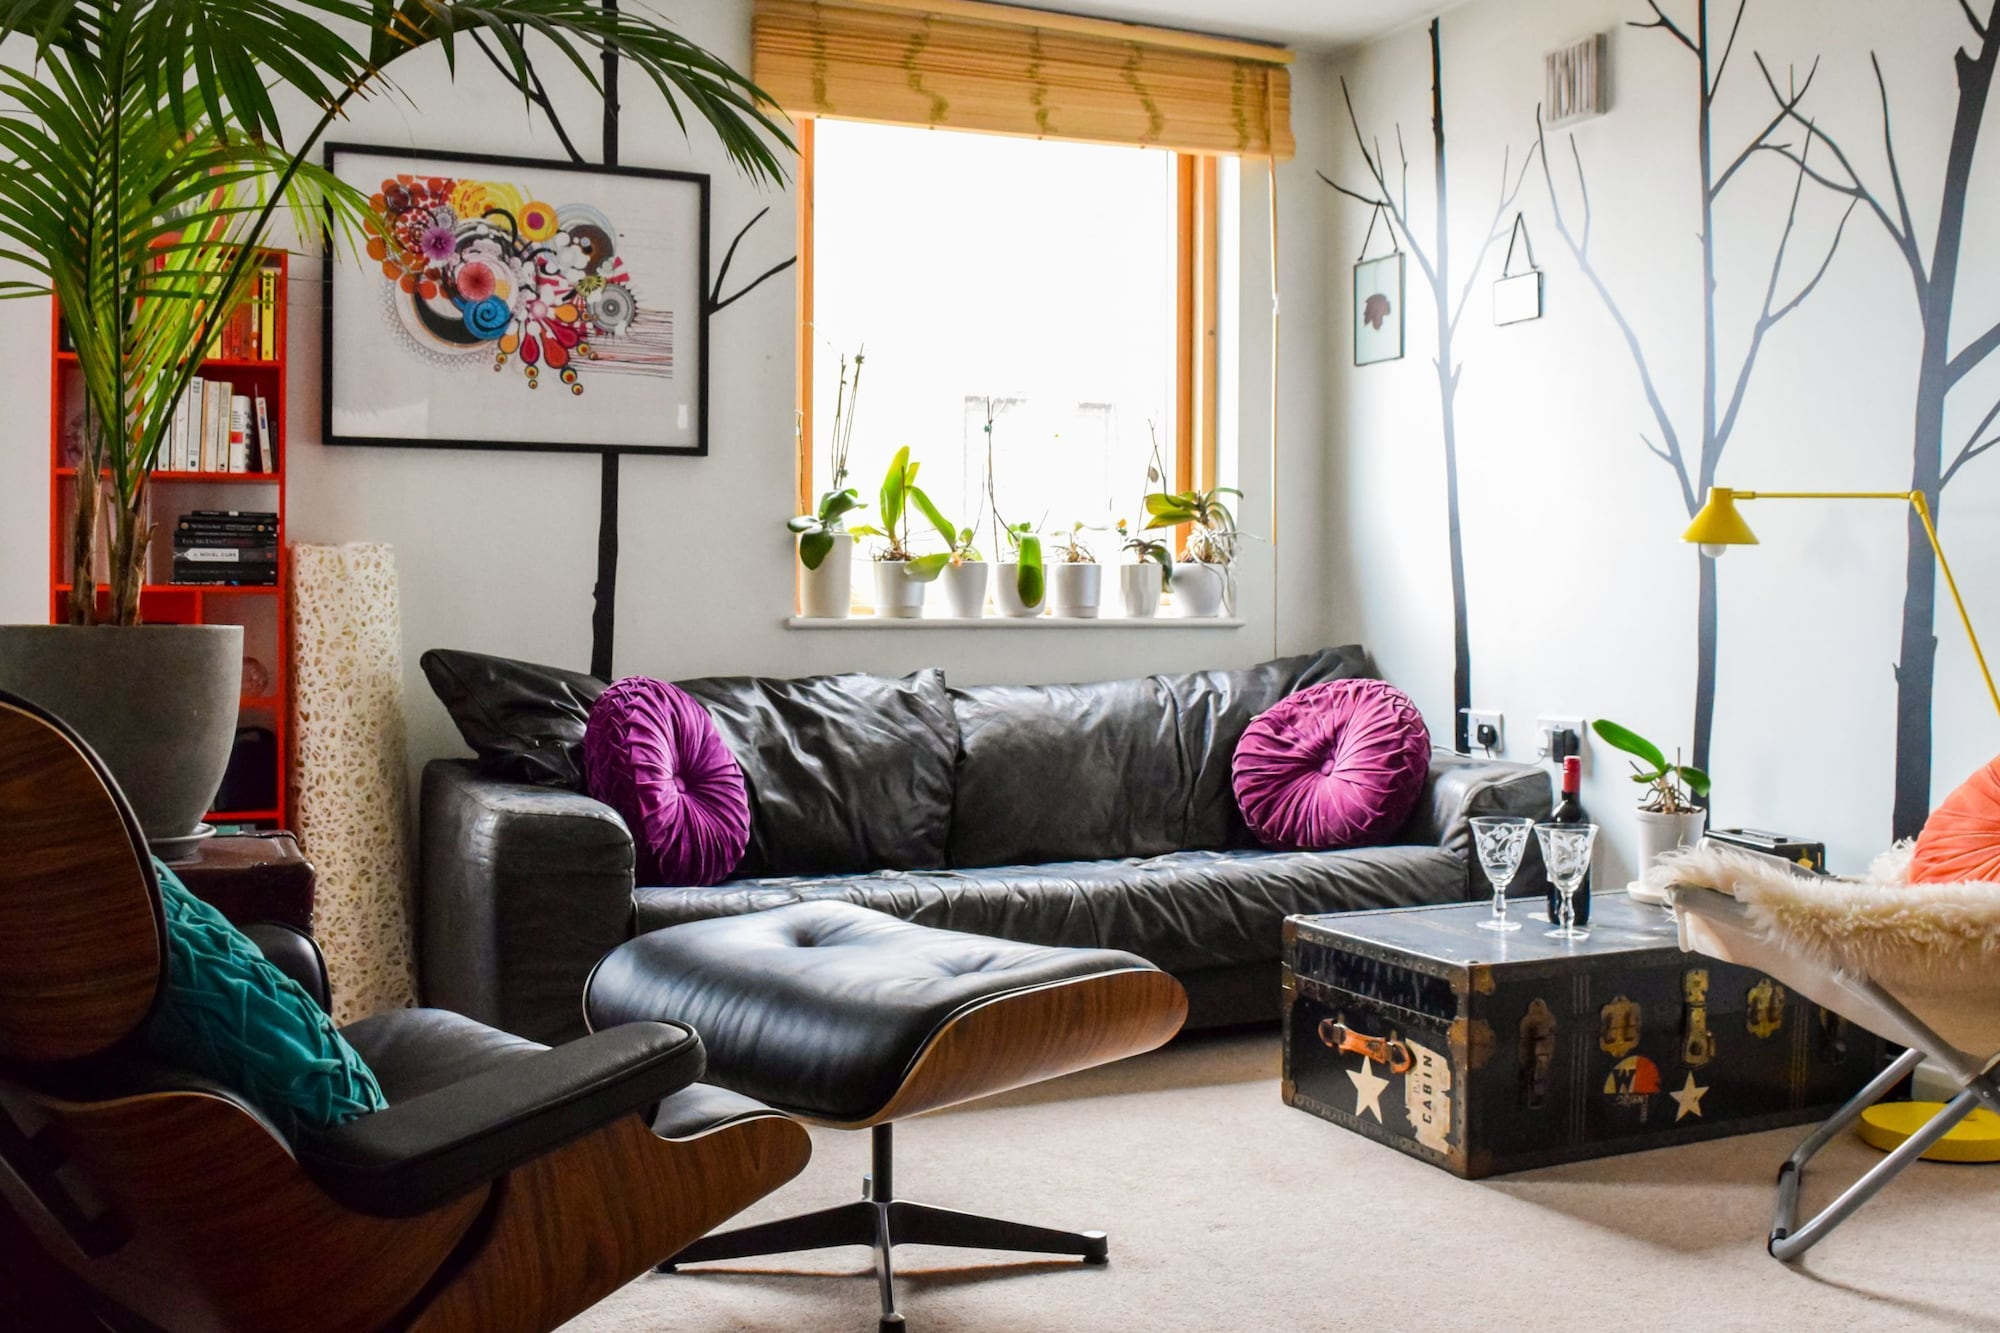 Cosy 1 Bedroom Camden Flat With Balcony On Regents Canal, London